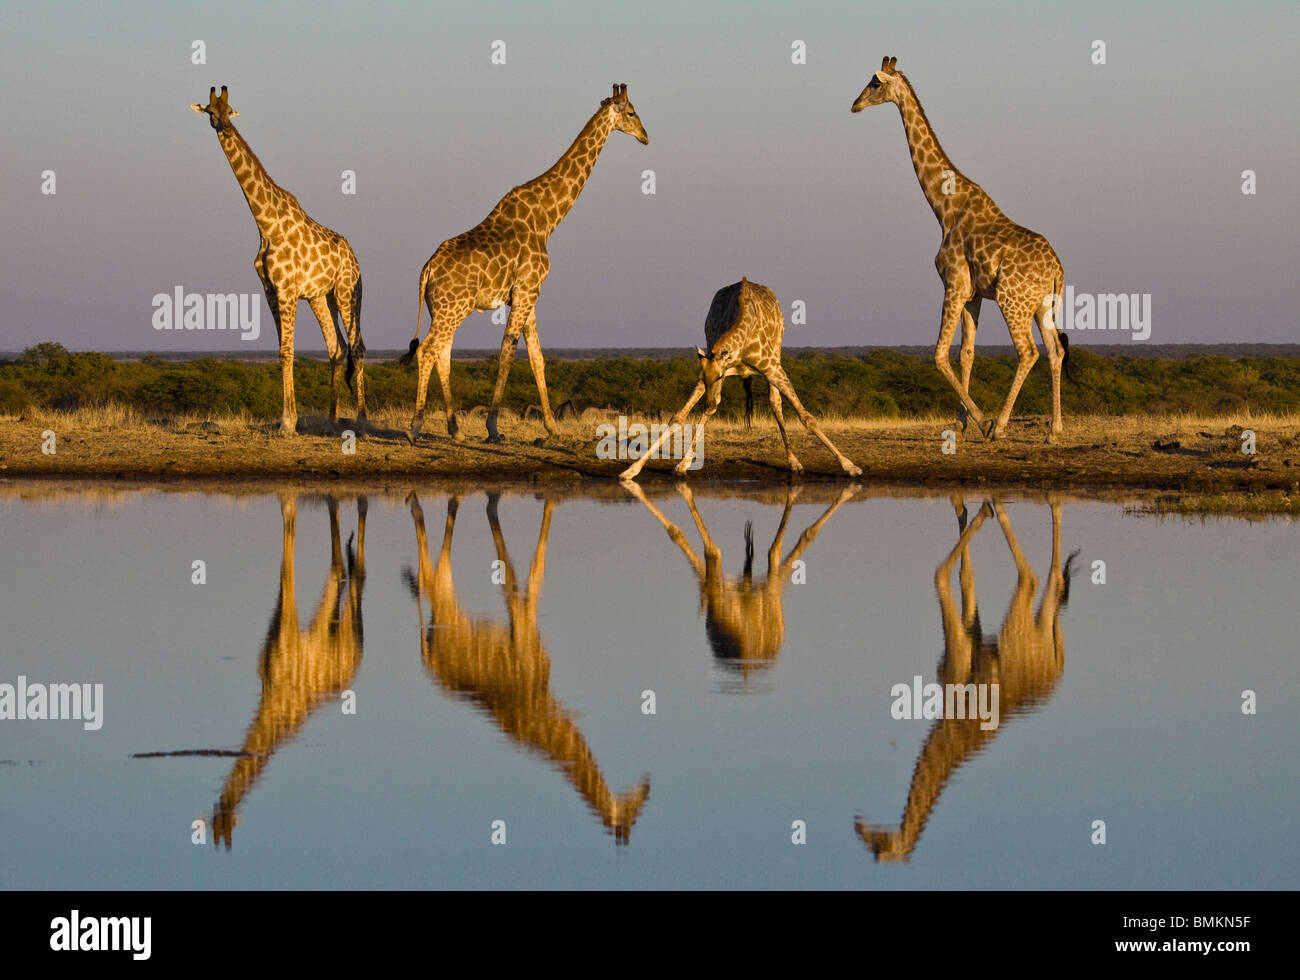 Giraffe at water hole, reflected in water, Etosha Pan, Namibia - Stock Image